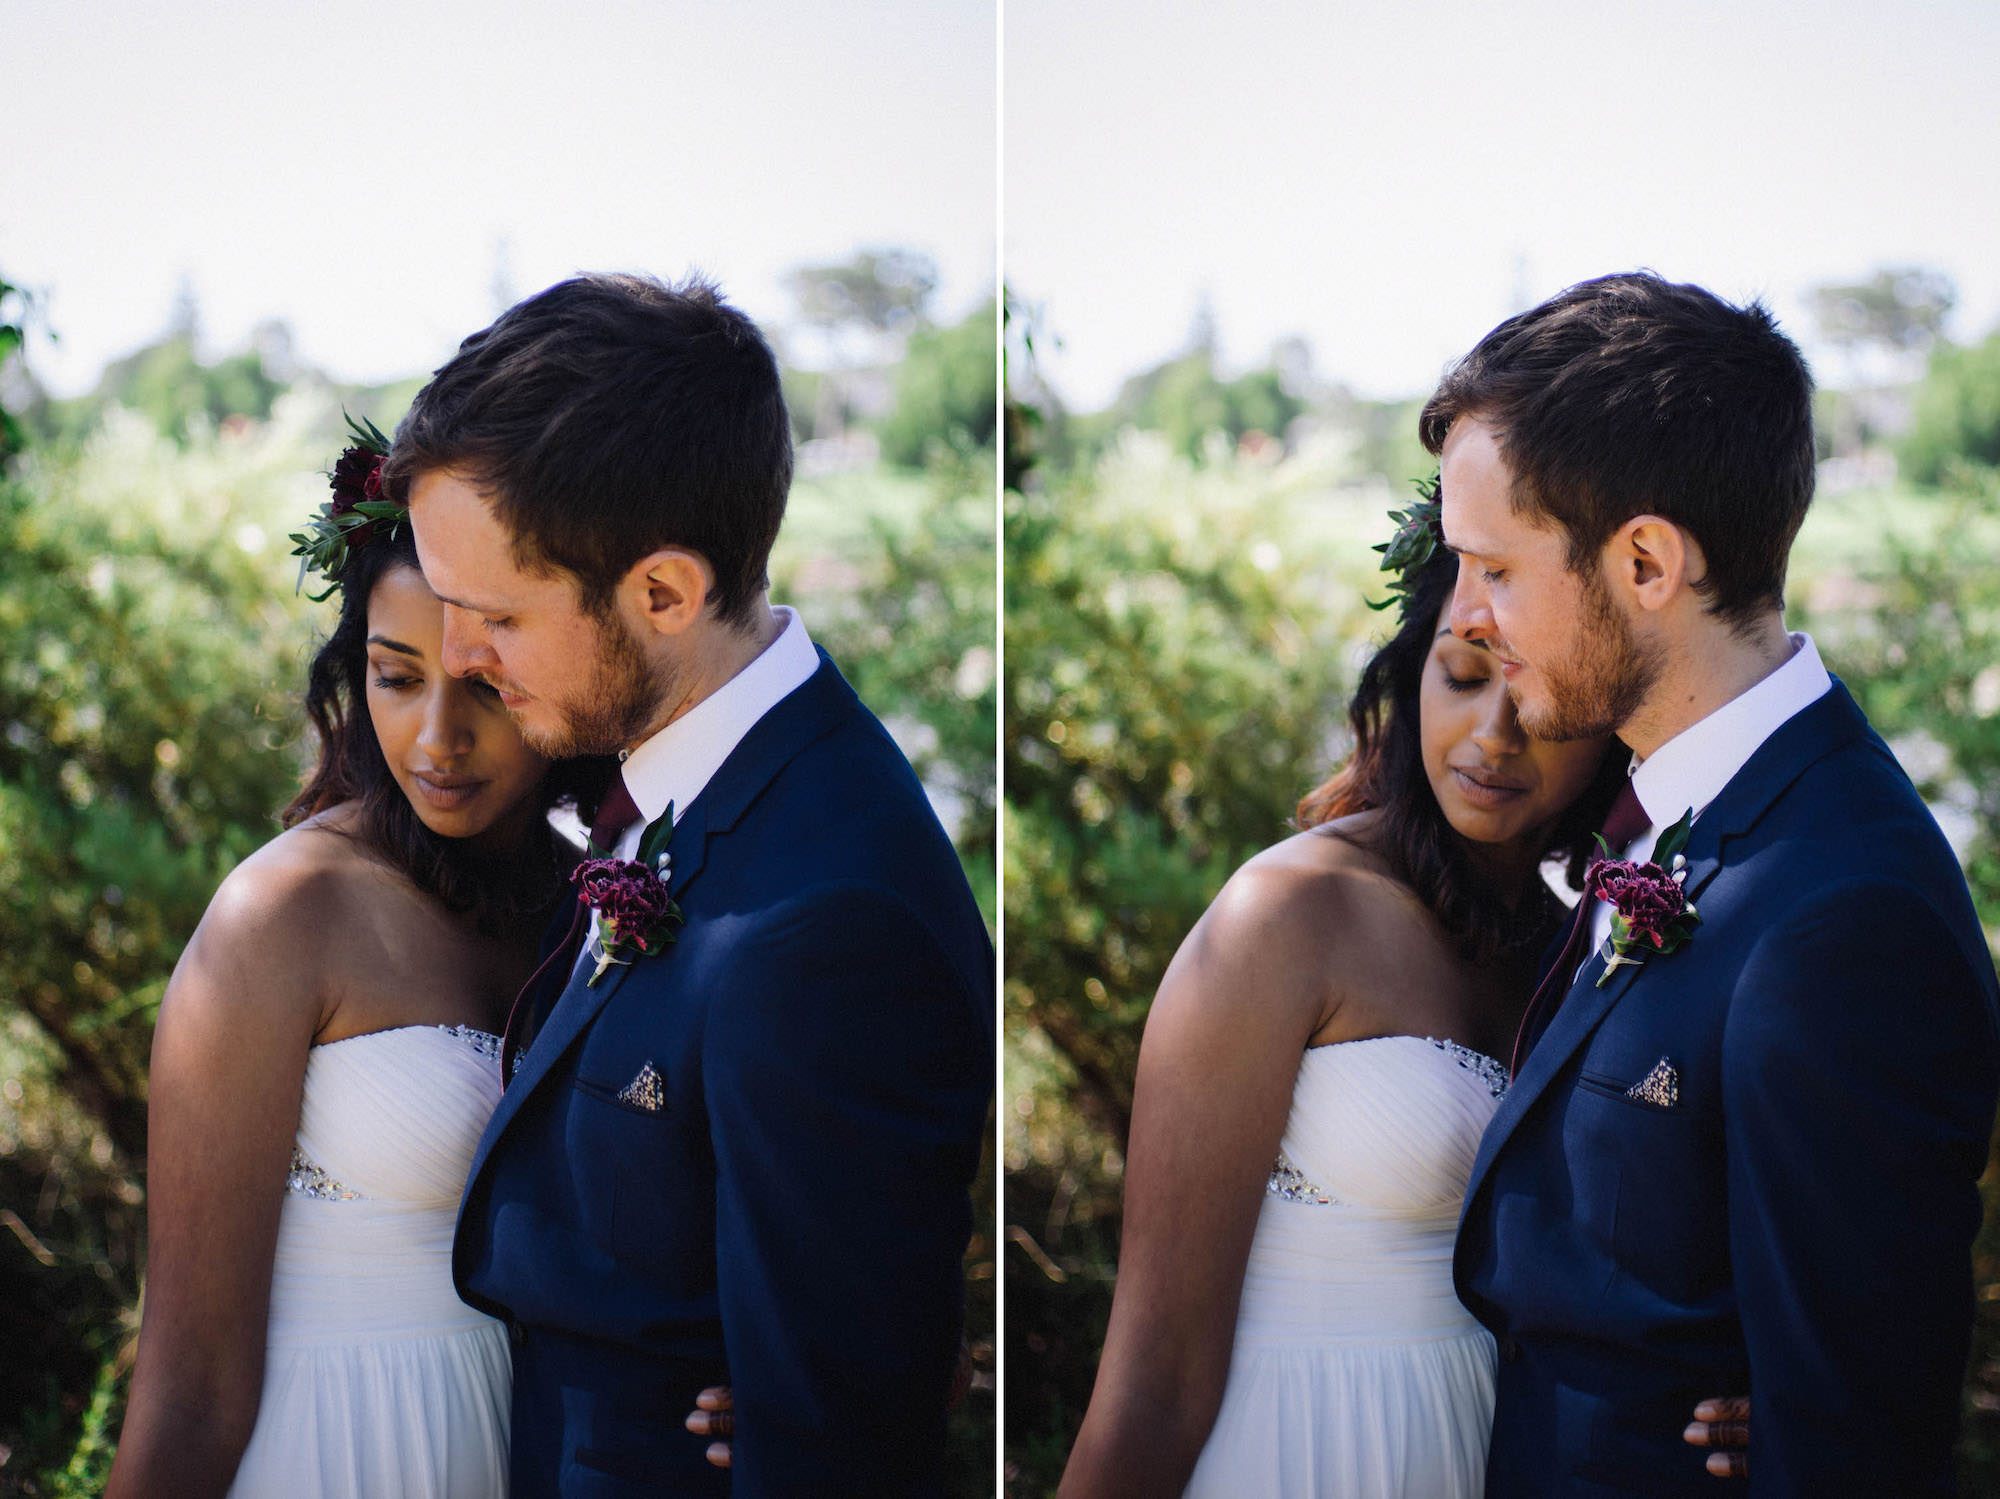 A bride & groom cuddle up during their portrait session with Rhianna May Destination Wedding Photographer at Subiaco, Australia.